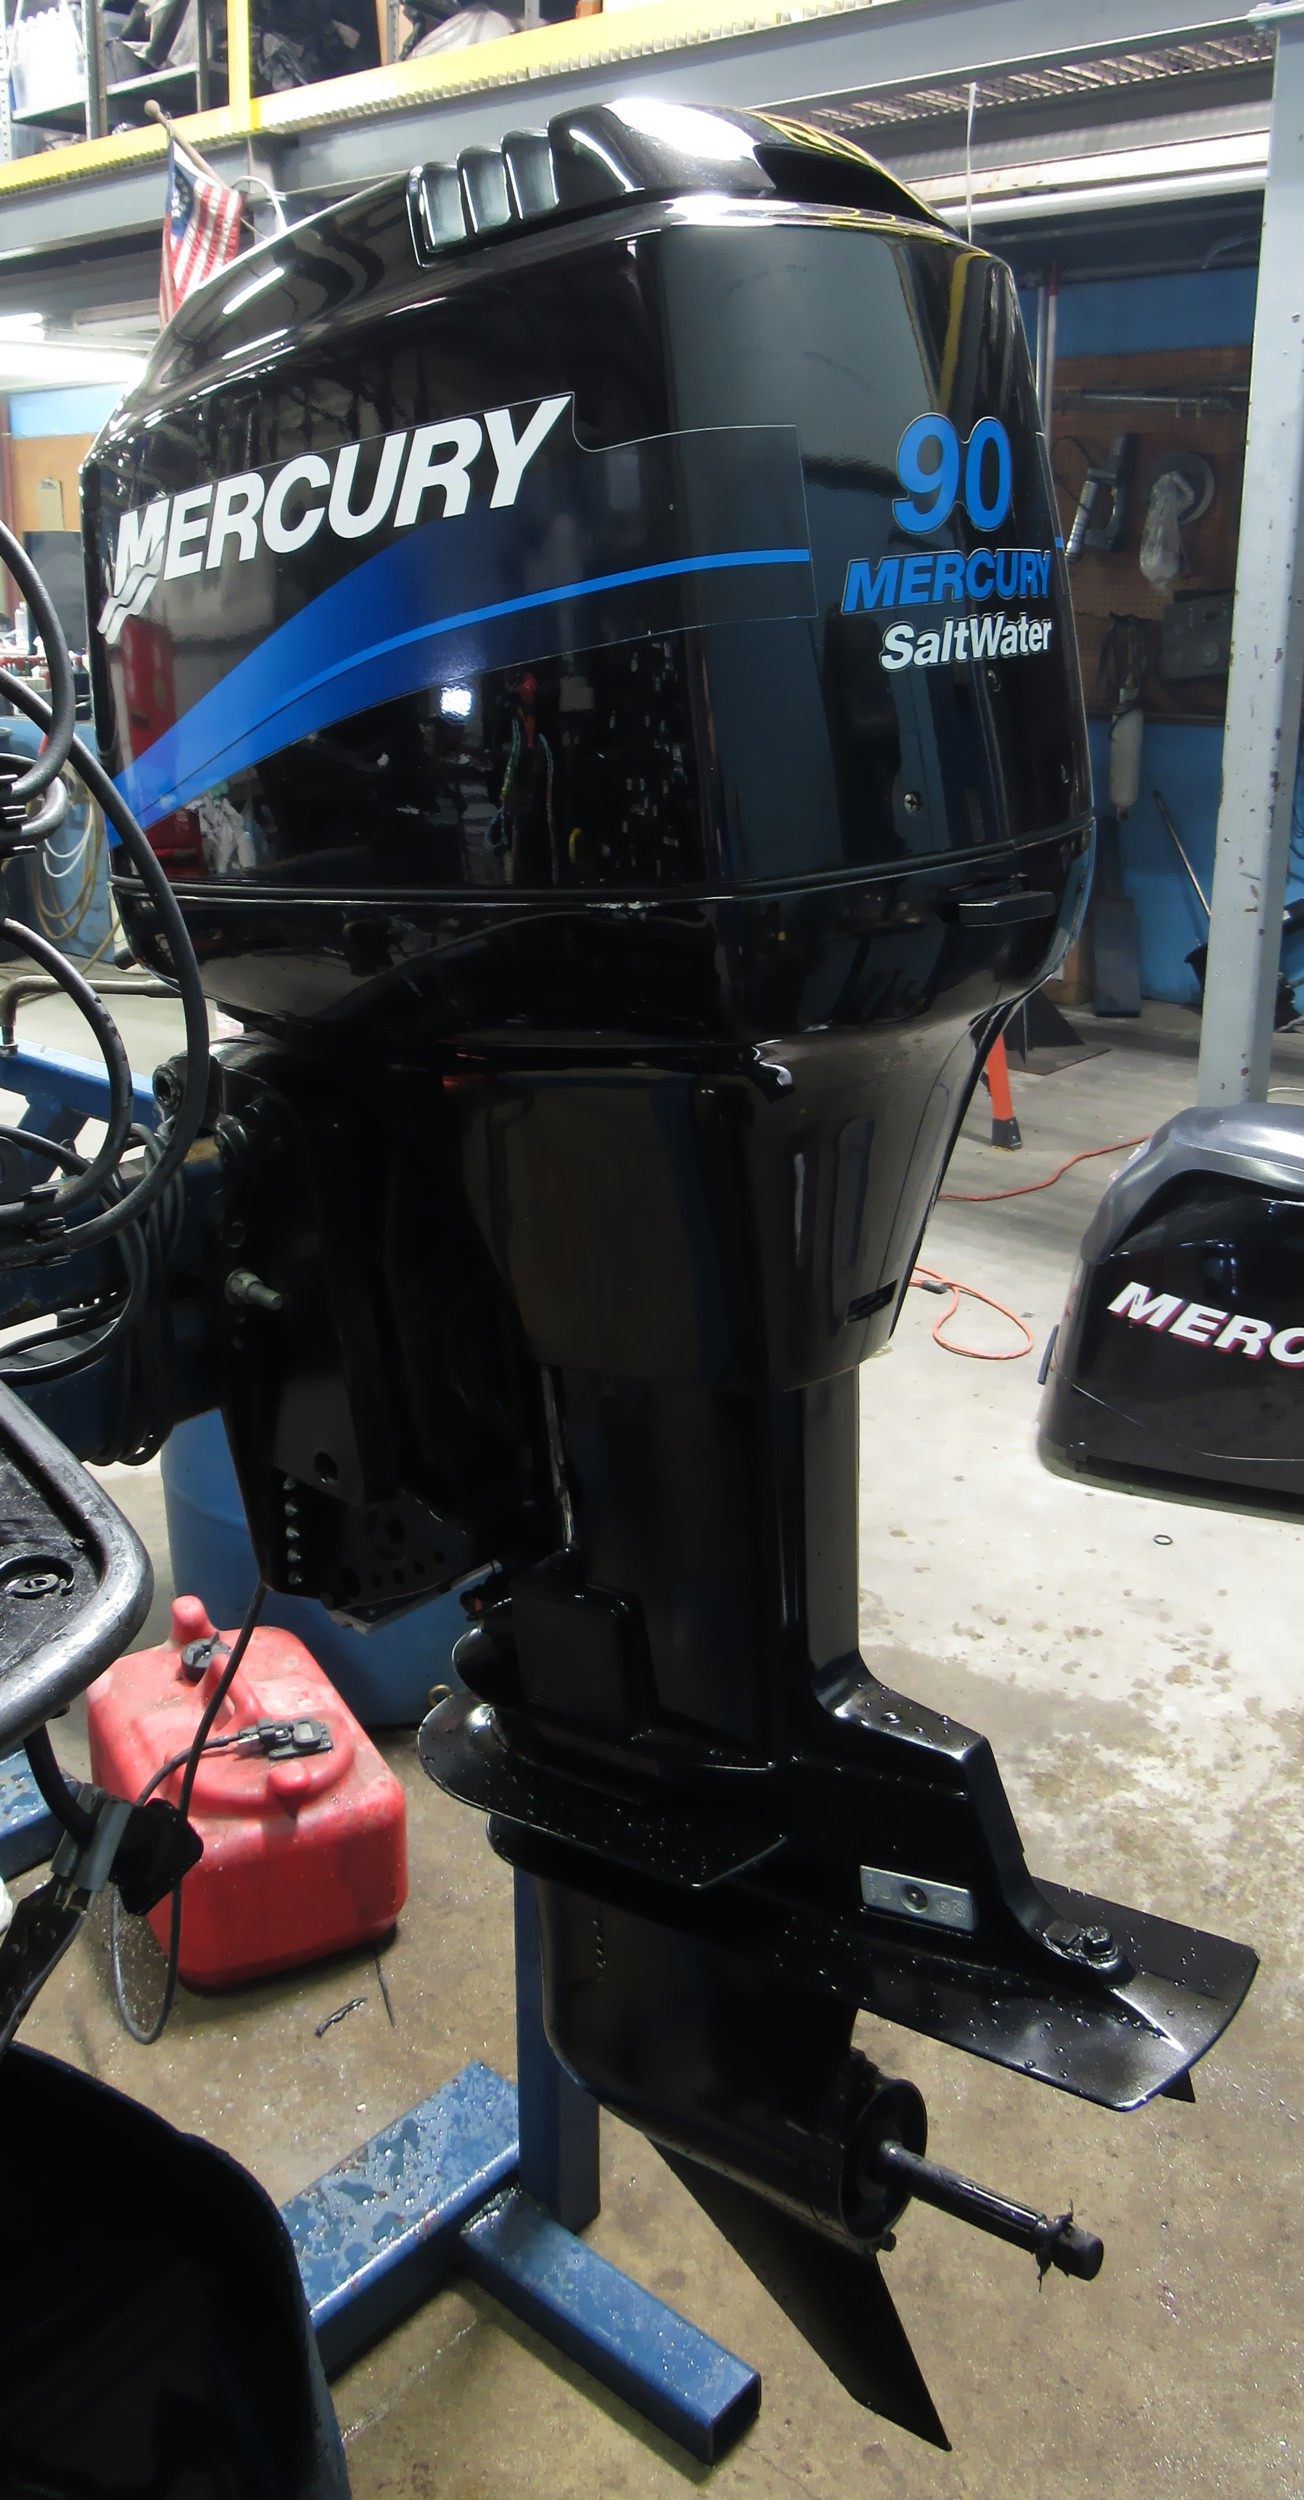 used 2000 mercury 90elpto 90hp 2 stroke saltwater outboard. Black Bedroom Furniture Sets. Home Design Ideas